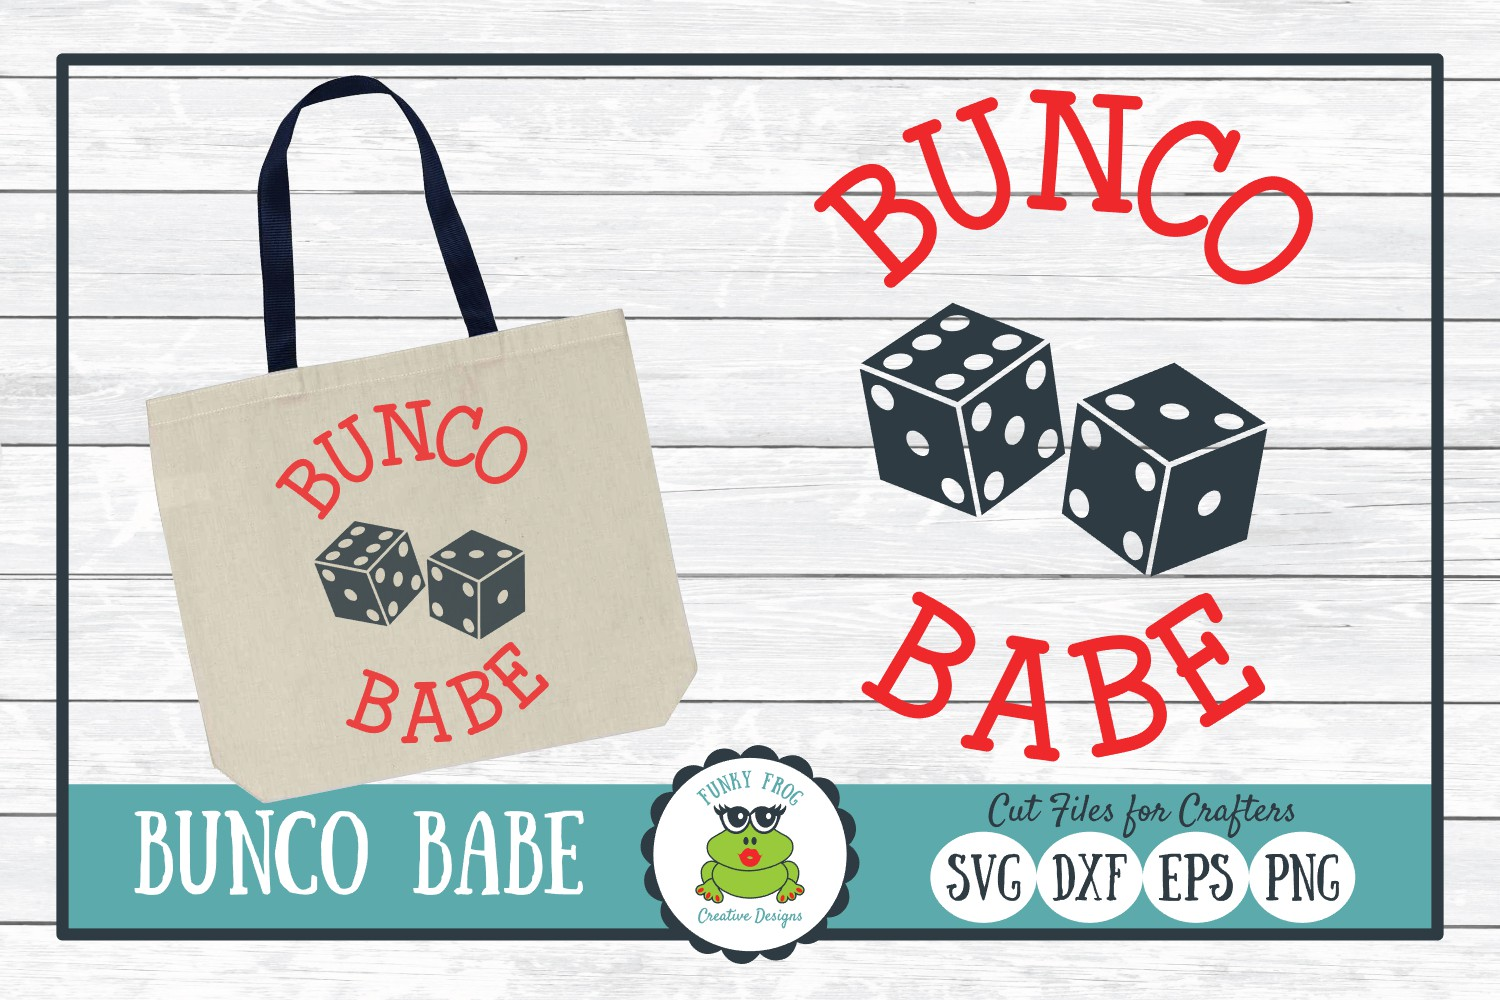 Download Free Bunco Babe Graphic By Funkyfrogcreativedesigns Creative Fabrica for Cricut Explore, Silhouette and other cutting machines.